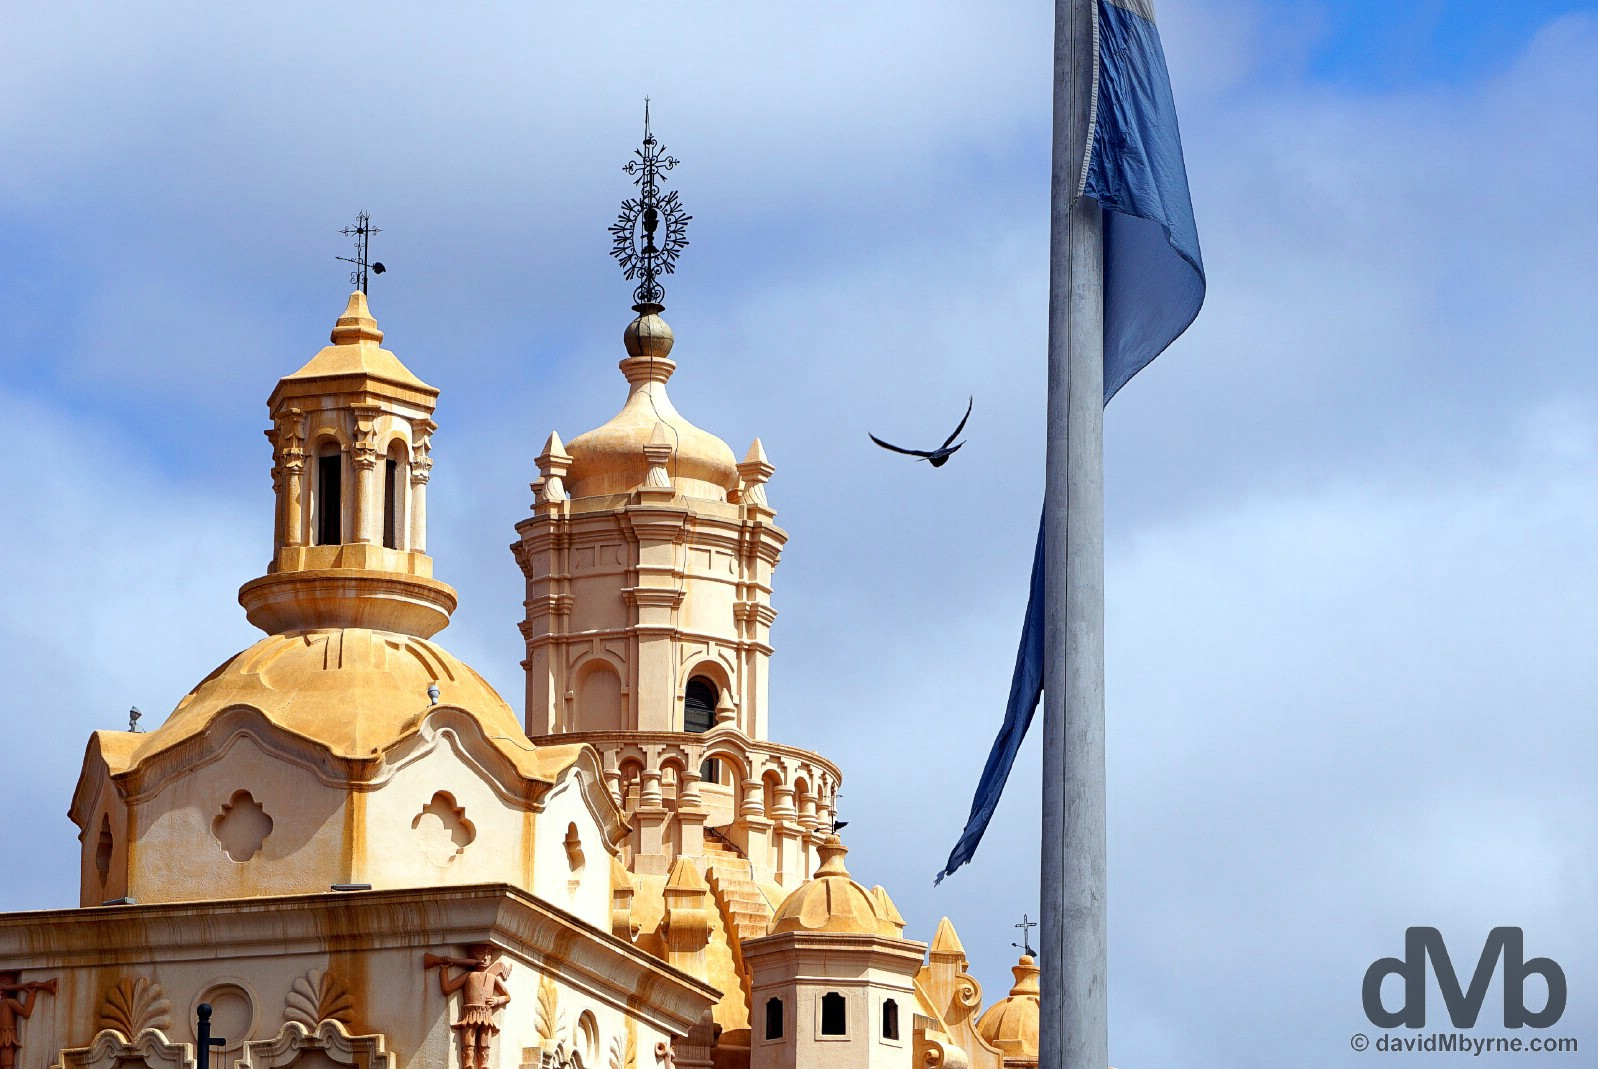 The cathedral & a flag pole as seen from Plaza San Martin in Cordoba, Argentina. September 24, 2015.